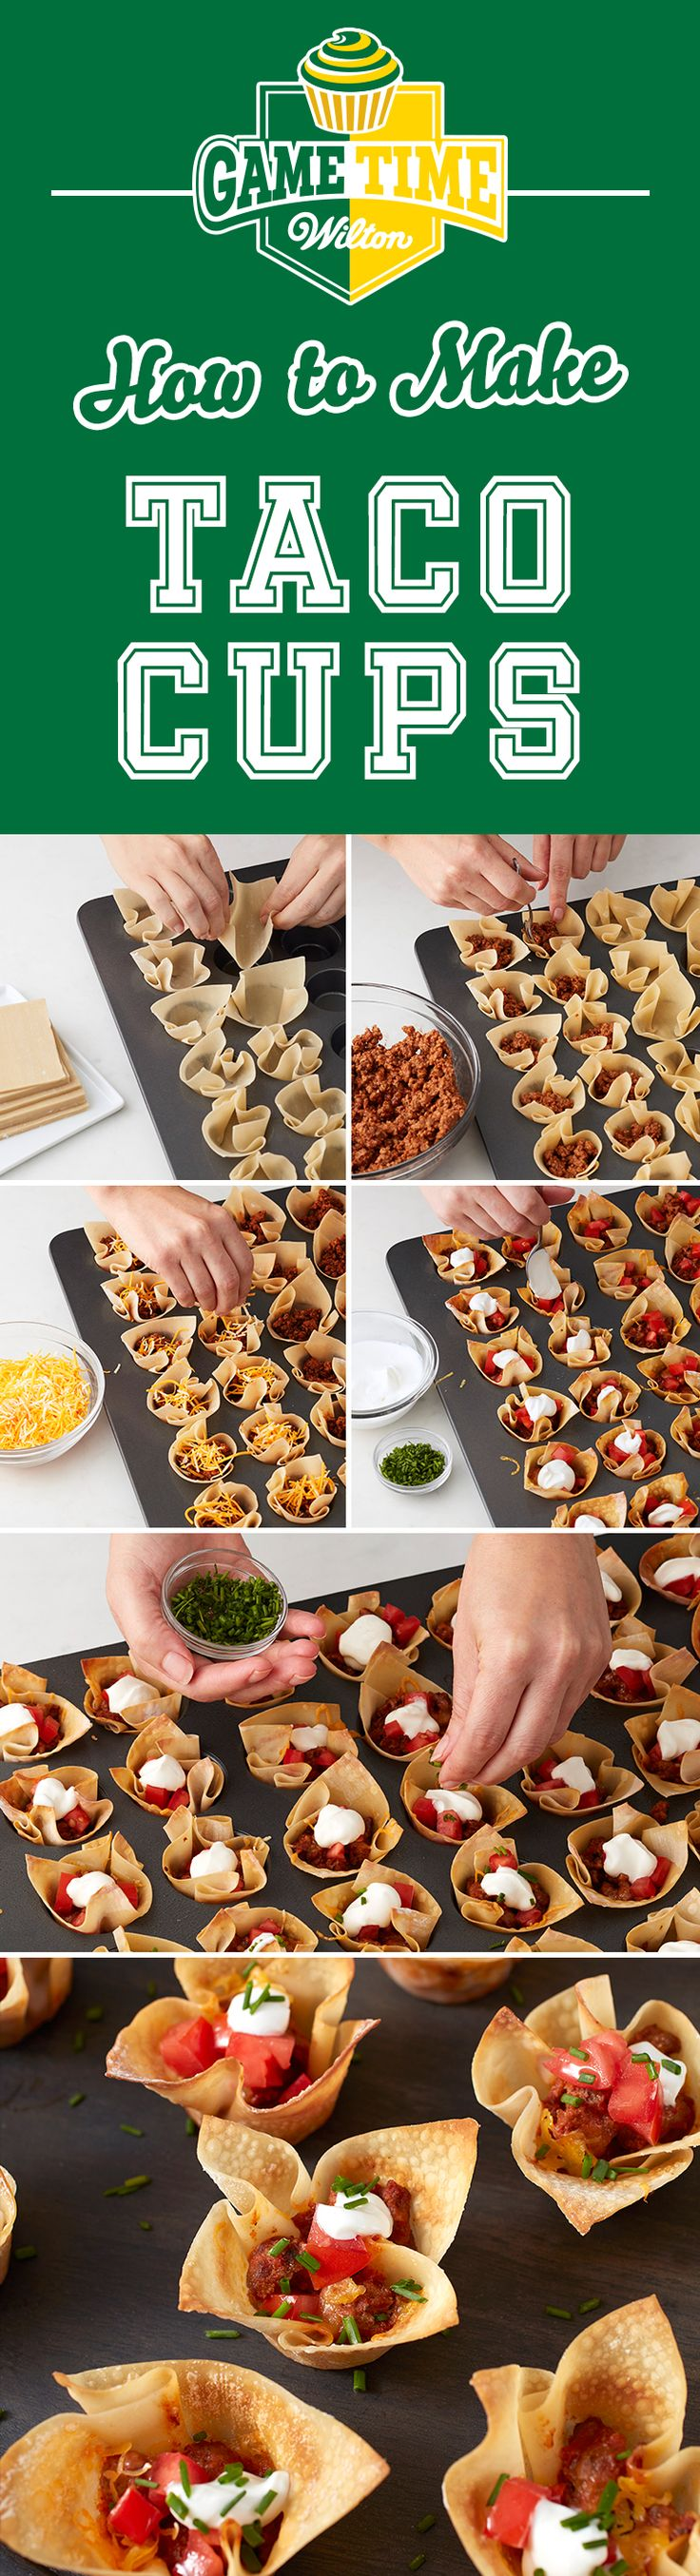 How to Make Mini Taco Cups - Mix things up with a grab-and-go snack that'll get your game day fiesta started. This fun twist on a taco is served in a light and flakey phyllo dough cup. No overtime required either. Use the MVP Mega Muffin Pan to bake 4 dozen game day snacks at once.